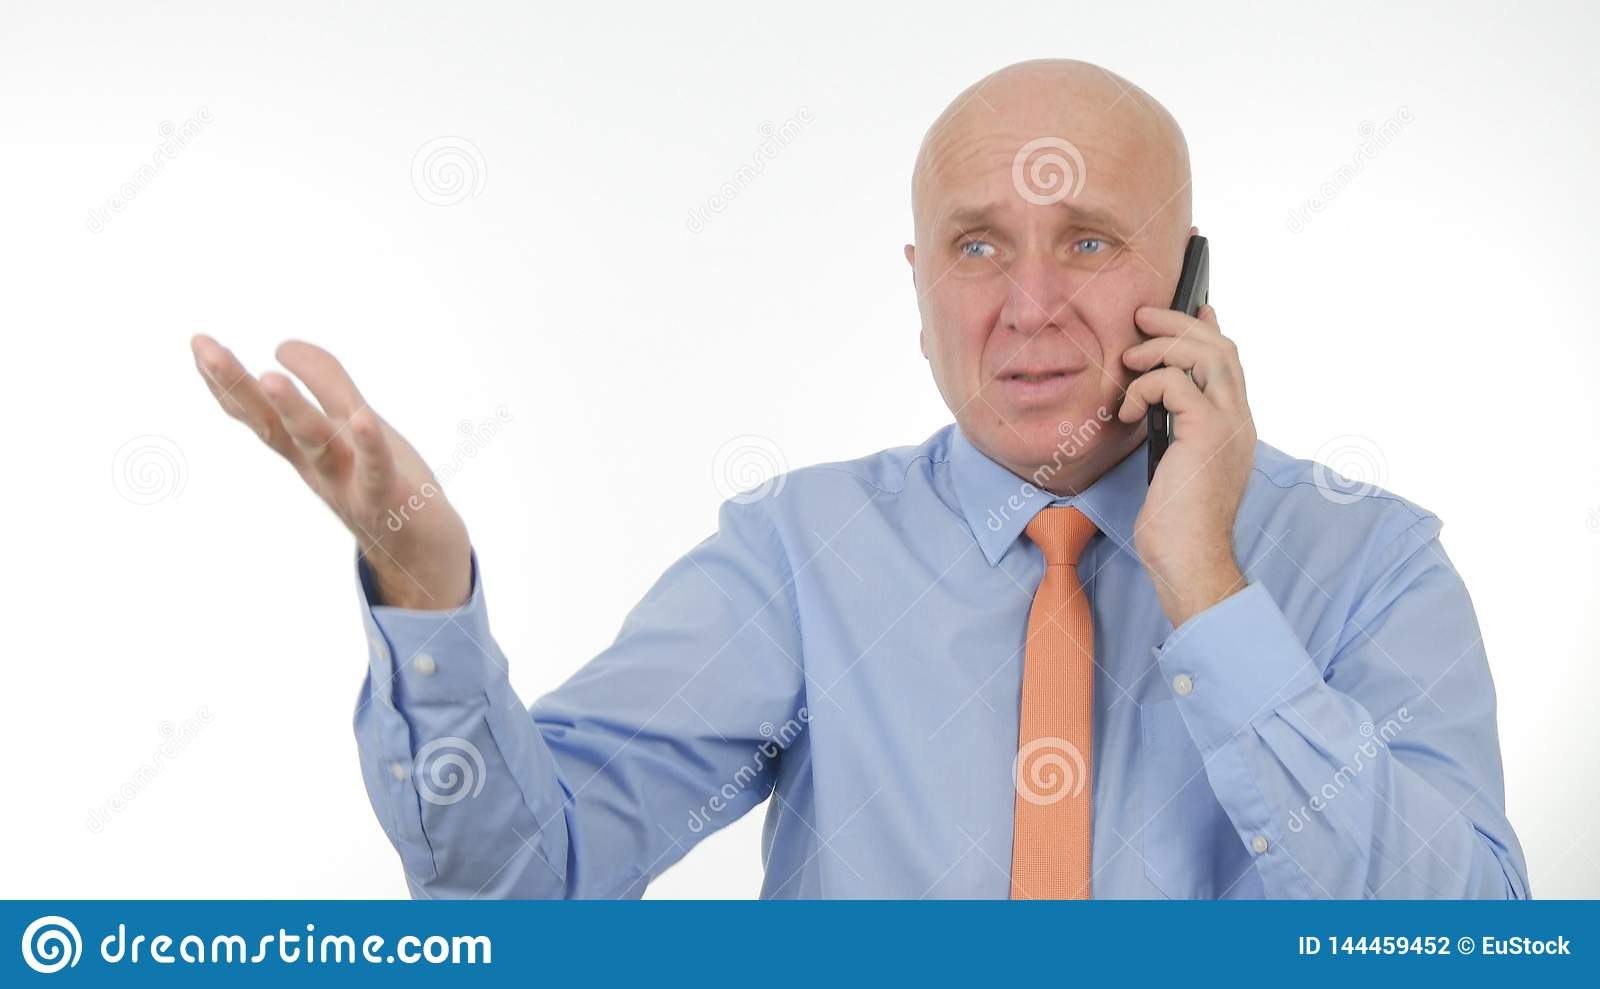 Disappointed Businessman Talk Bad News on Cellphone Make Nervous Hand Gestures